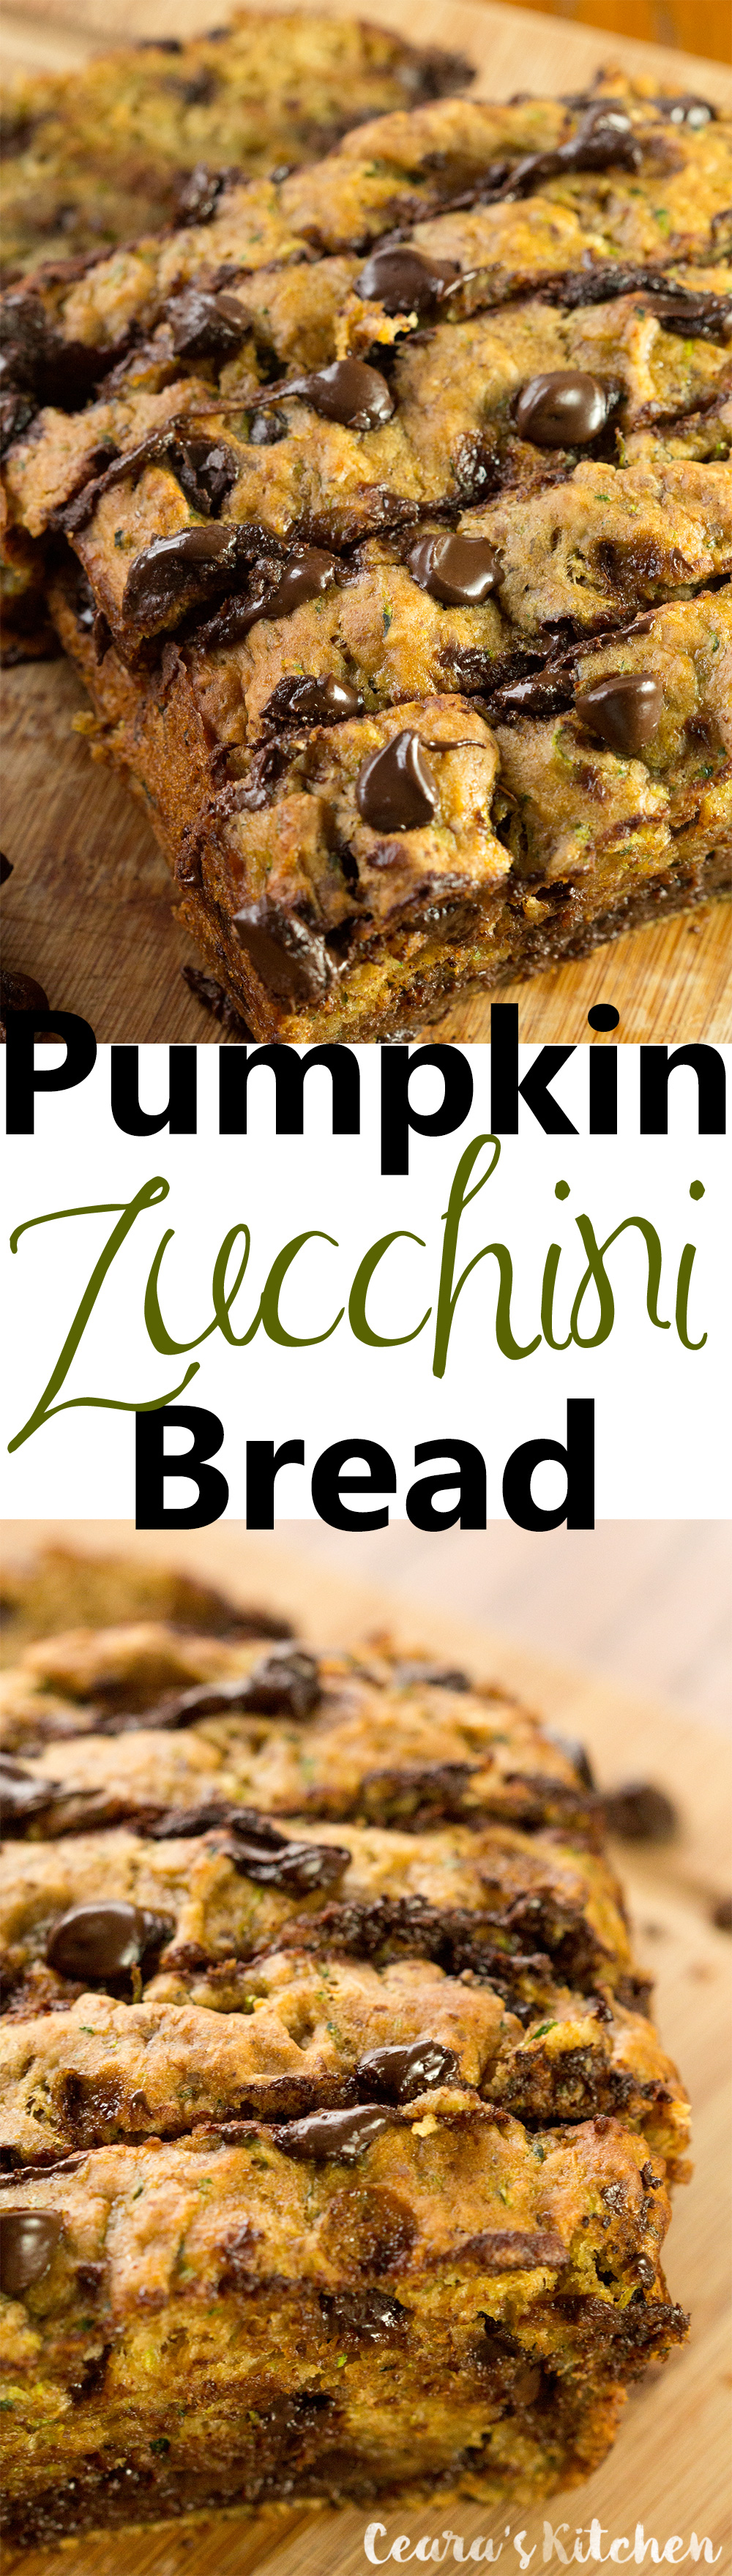 Vegan Healthy Chocolate Chip Pumpkin Bread recipe